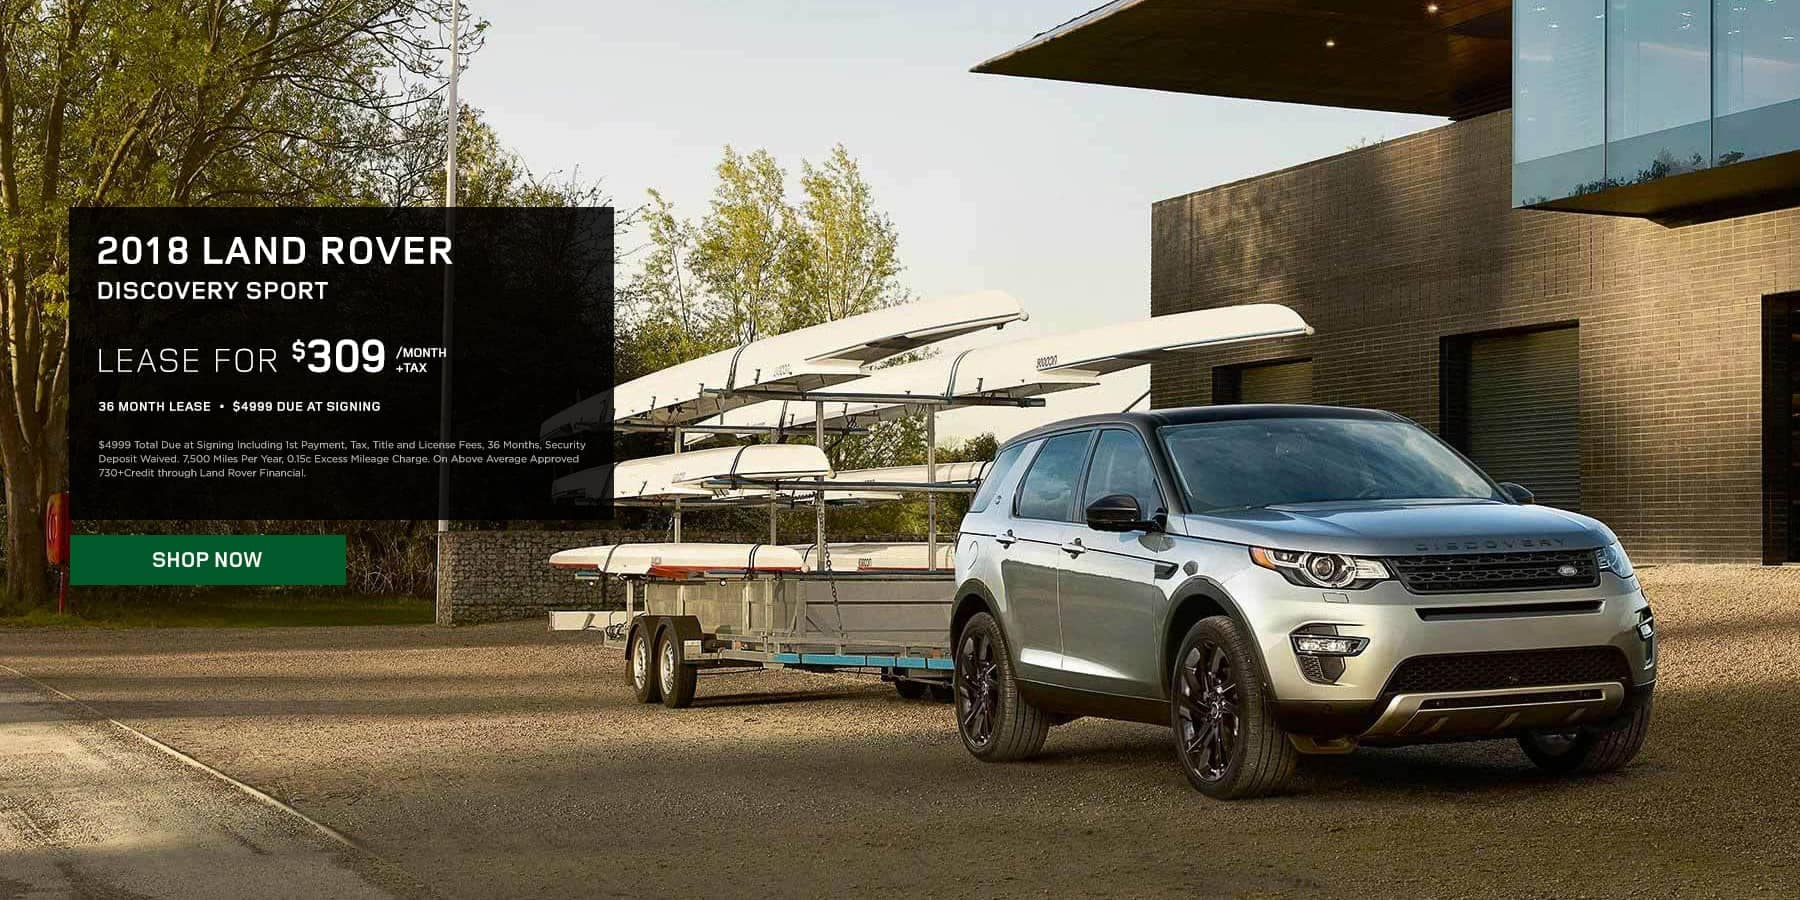 2018-LR-Discovery-Sport